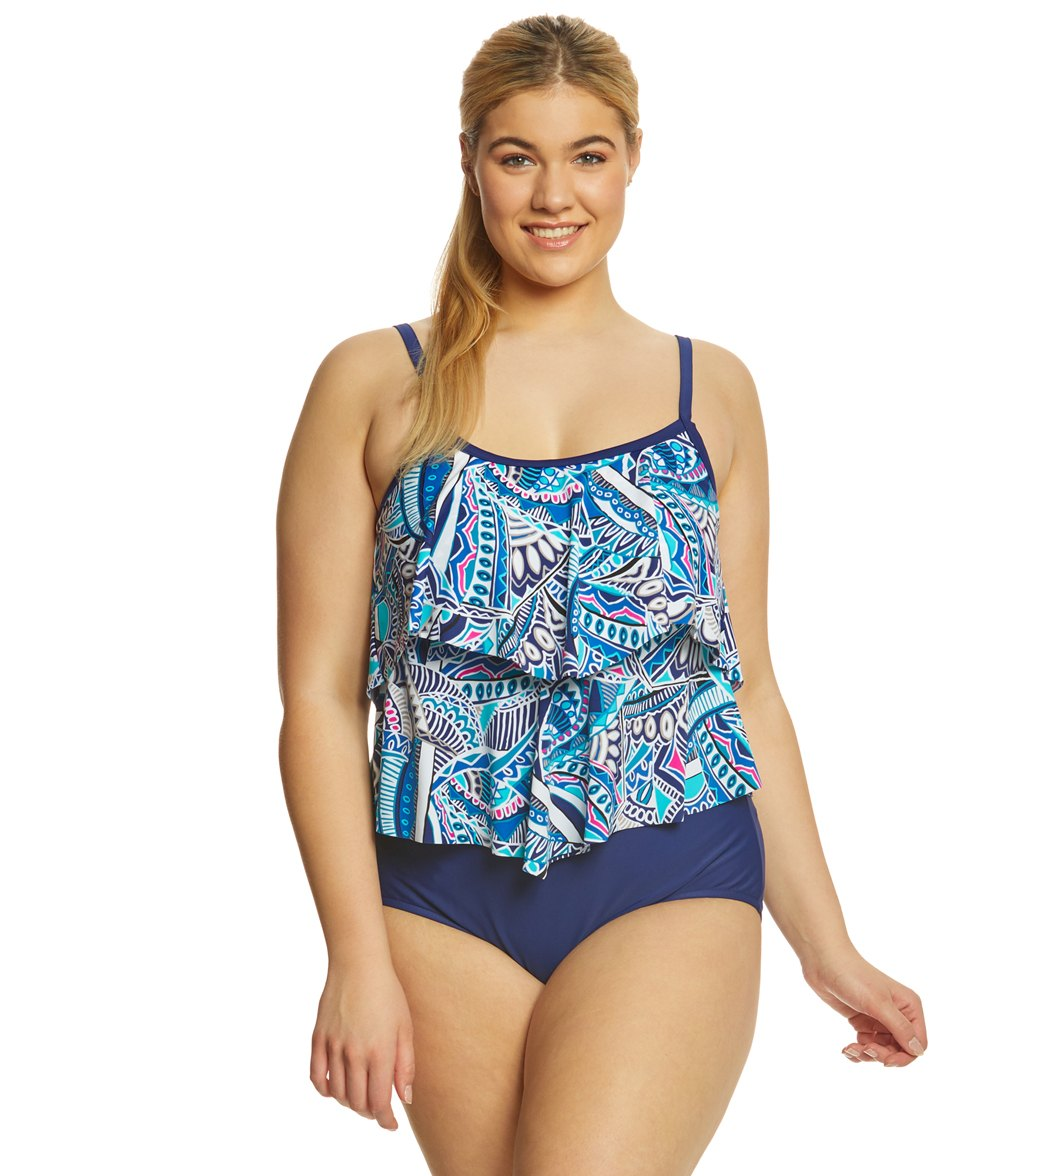 972ef23f1b ... Maxine Plus Size Island Days Double Tier One Piece Swimsuit. Play  Video. MODEL MEASUREMENTS